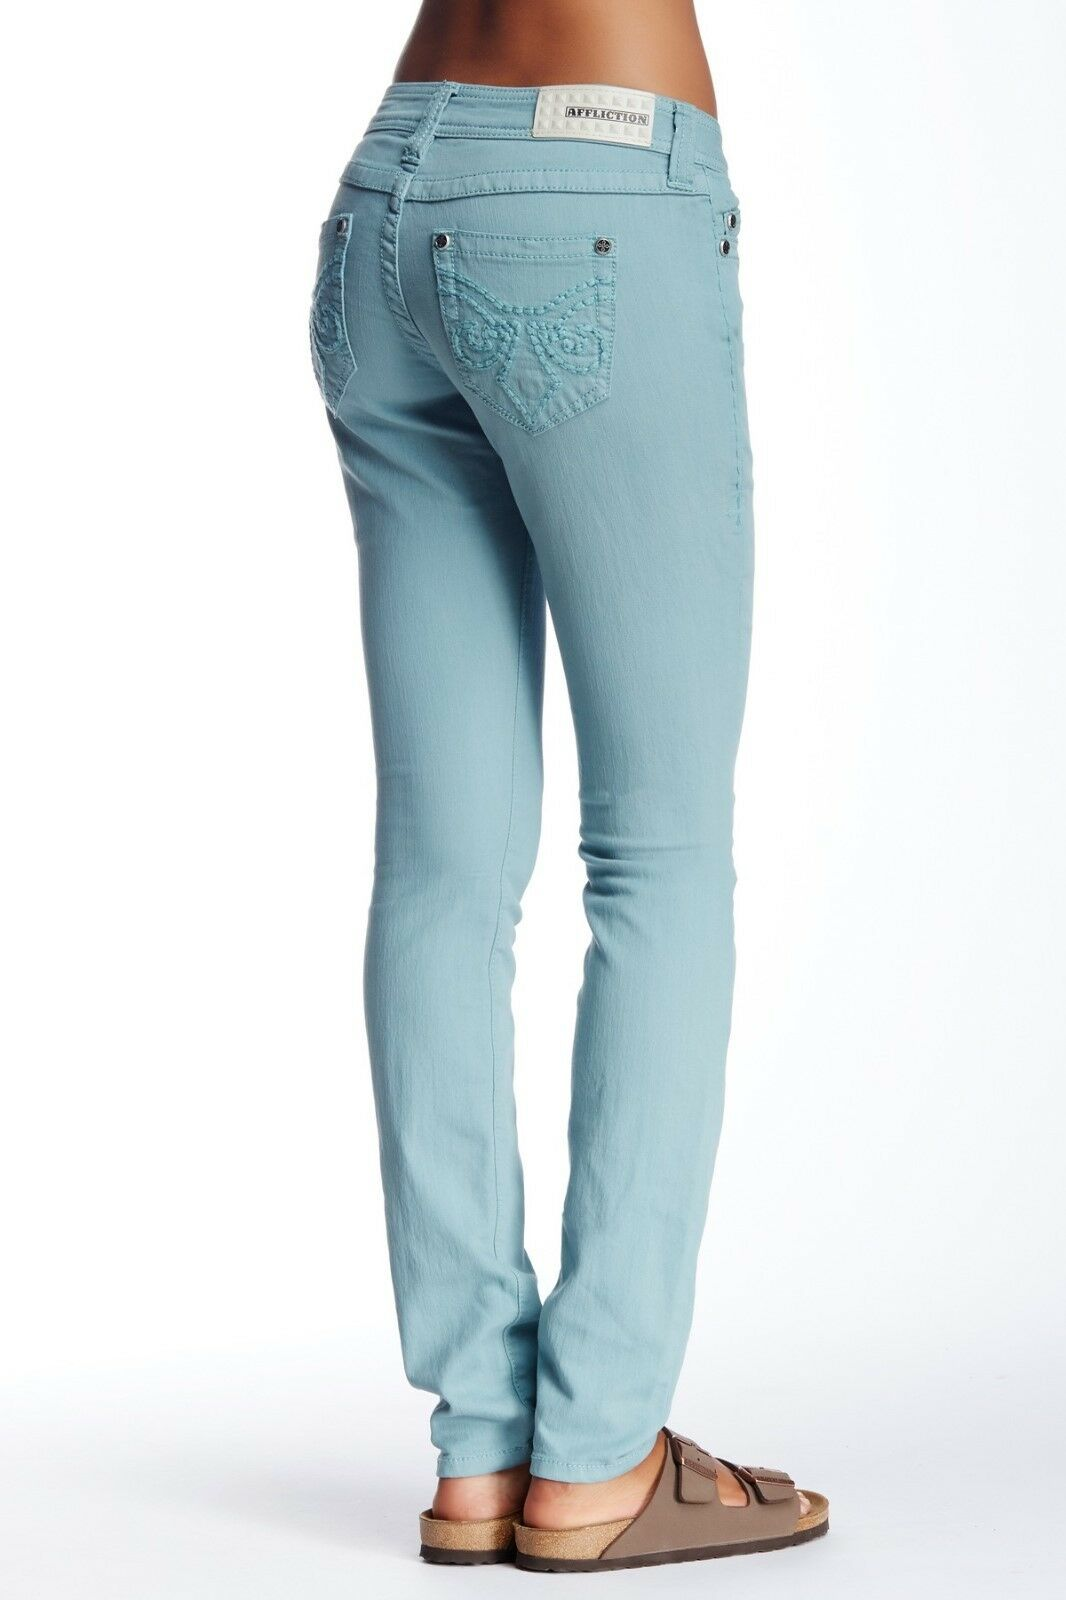 Affliction Women's Requel Fleur Teal Skinny jeans 29 x 31